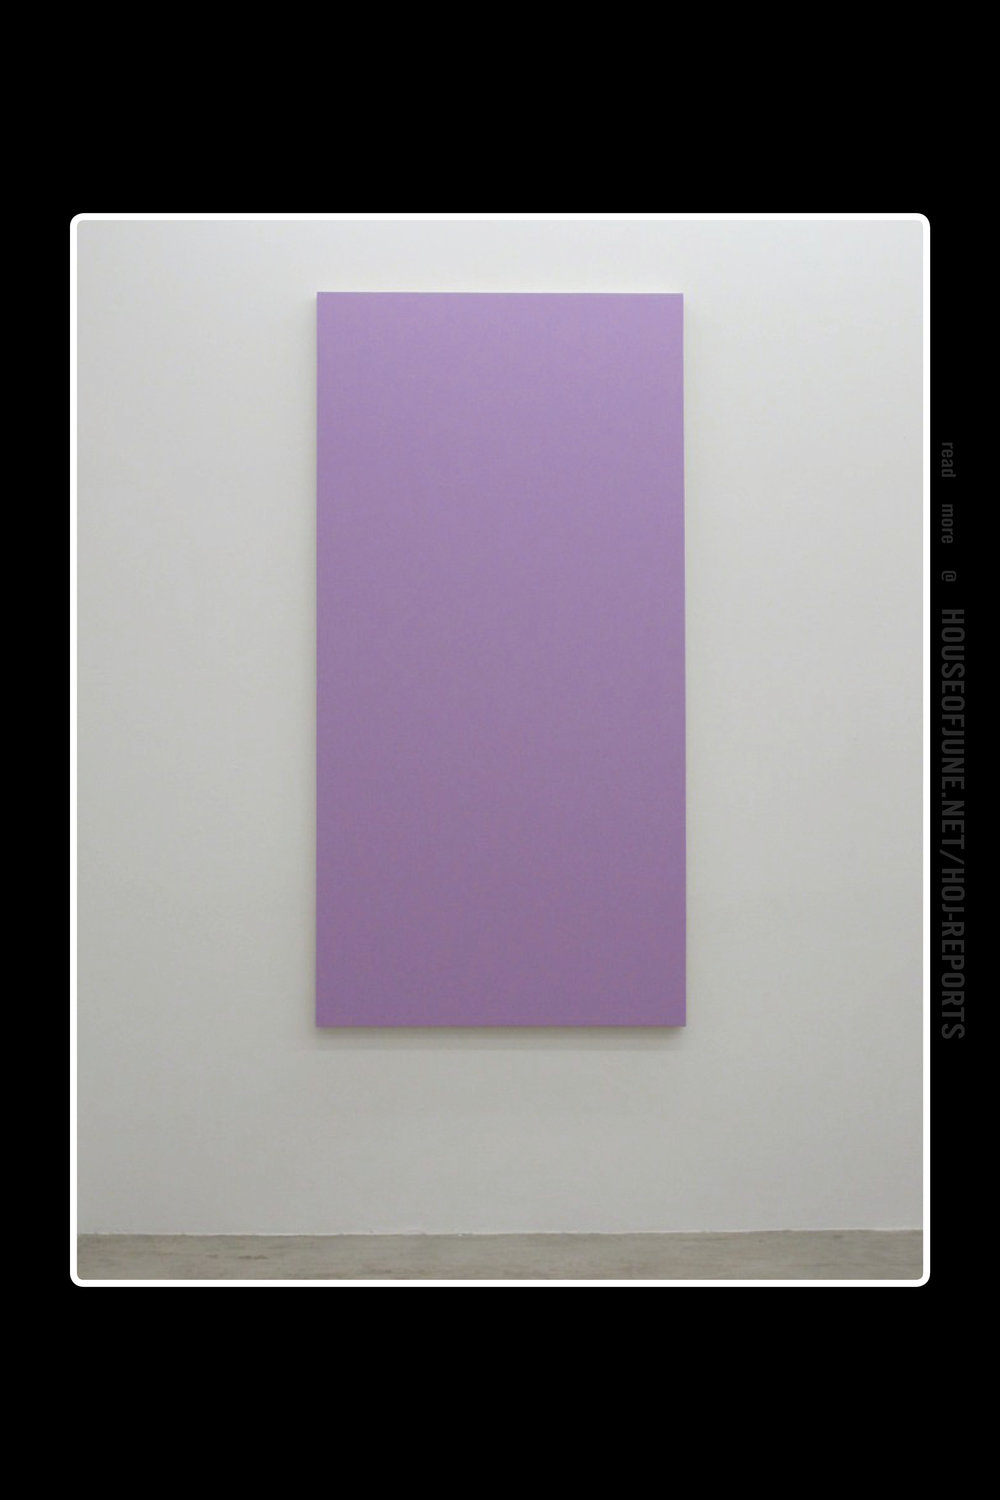 Henry Codax   (Acrylic on Canvas)  Untitled (Violet), 2012